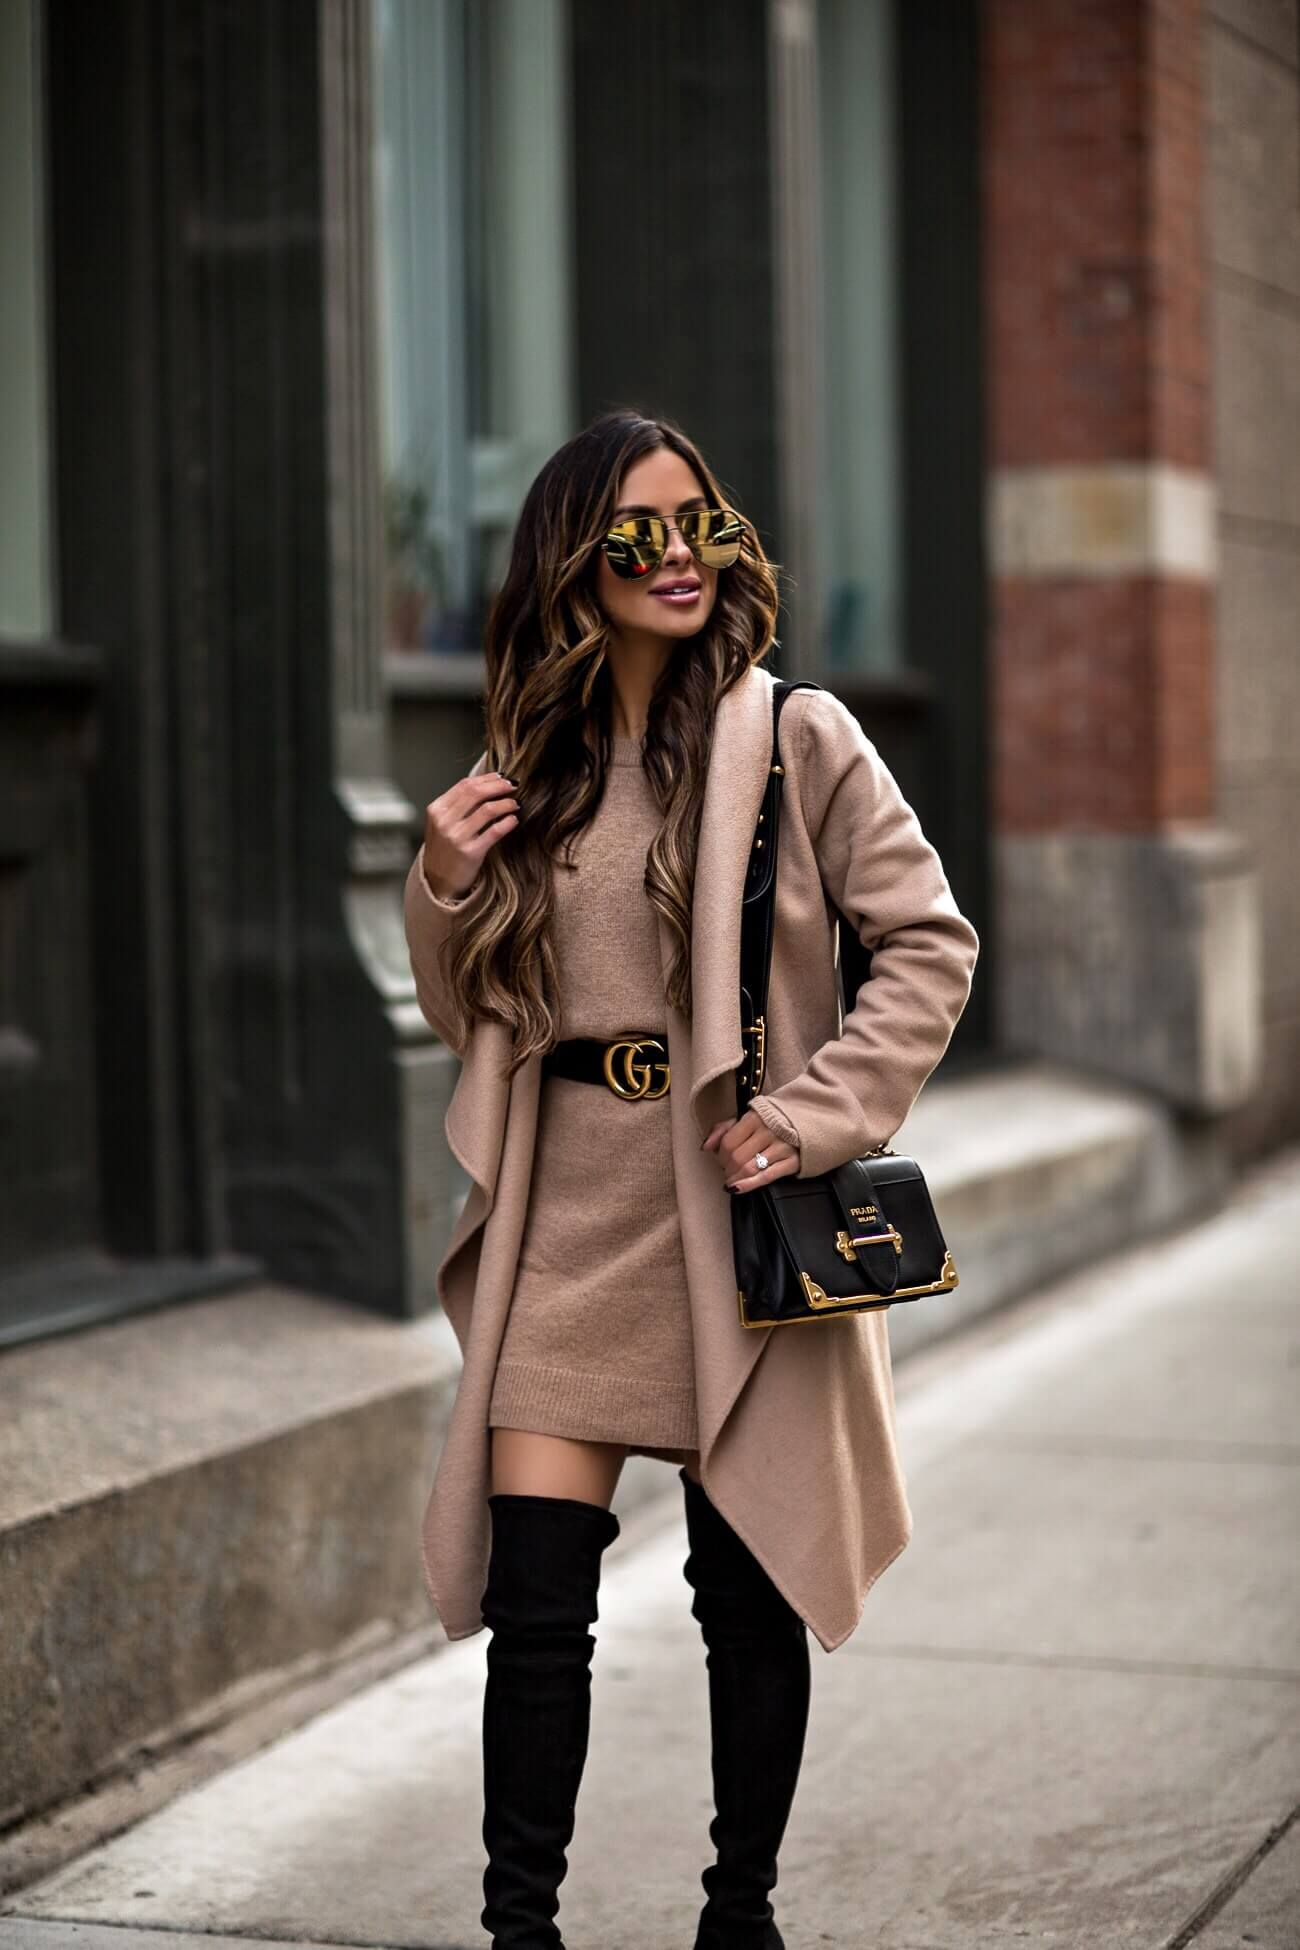 mia mia mine wearing a gucci belt and a camel coat from nordstrom ... 2e93d4657